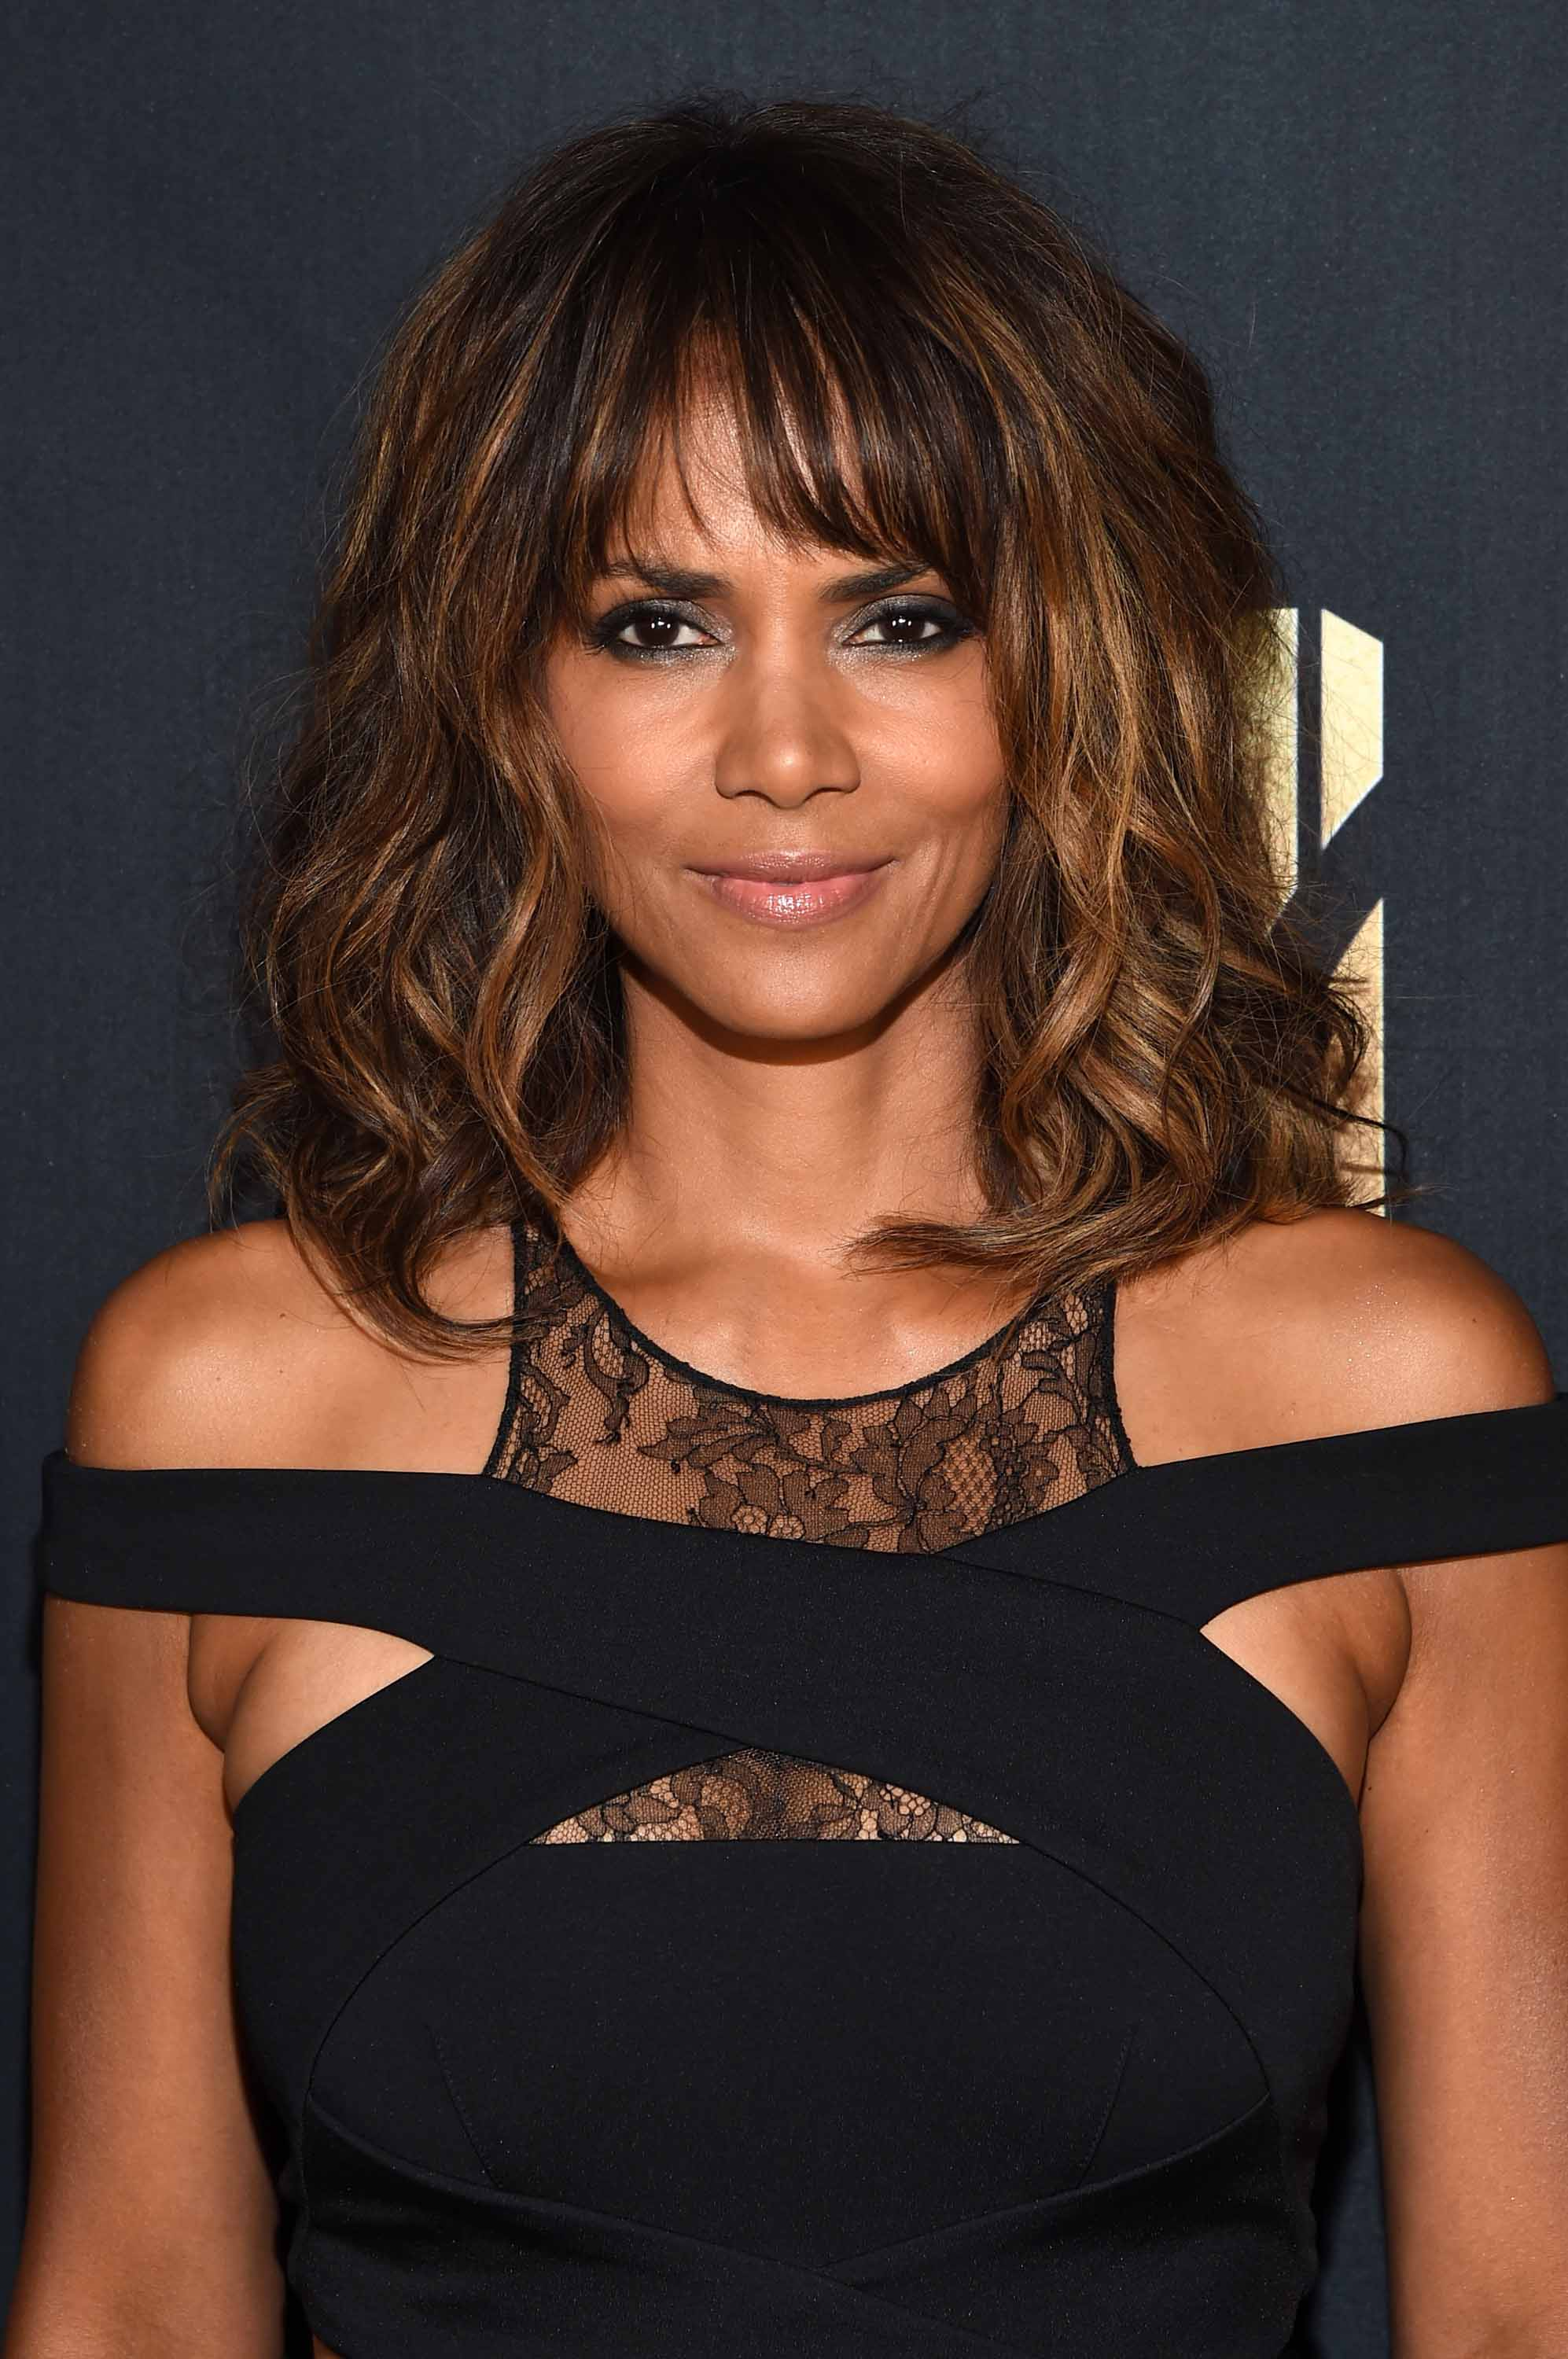 halle berry with caramel balayage brown shoulder length wavy hair and parted fringe wearing black lace detail dress